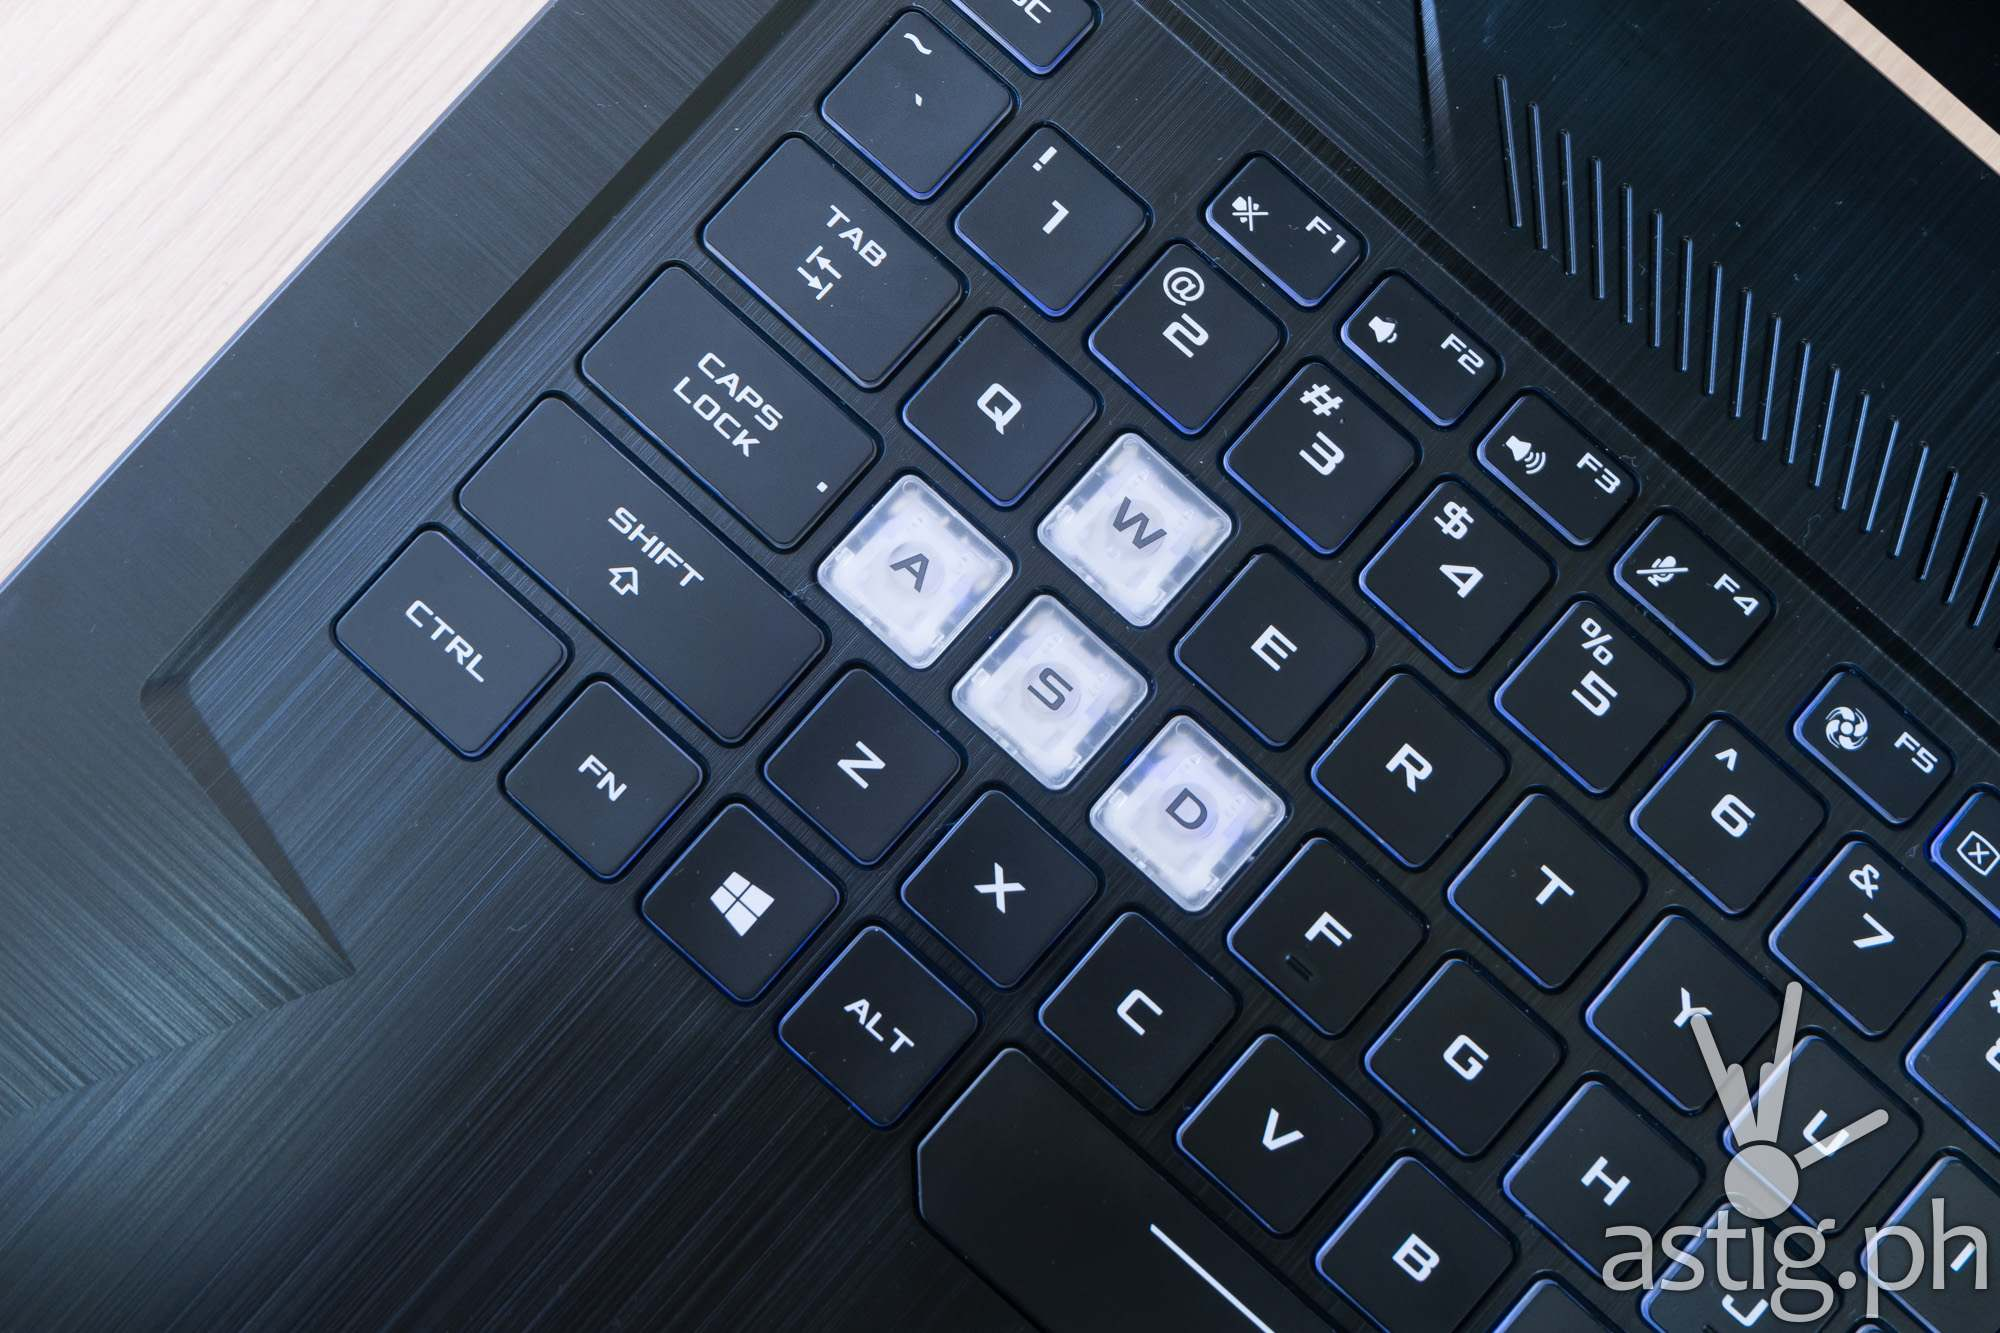 ASUS TUF Gaming FX705 review: Well-rounded, sturdy laptop